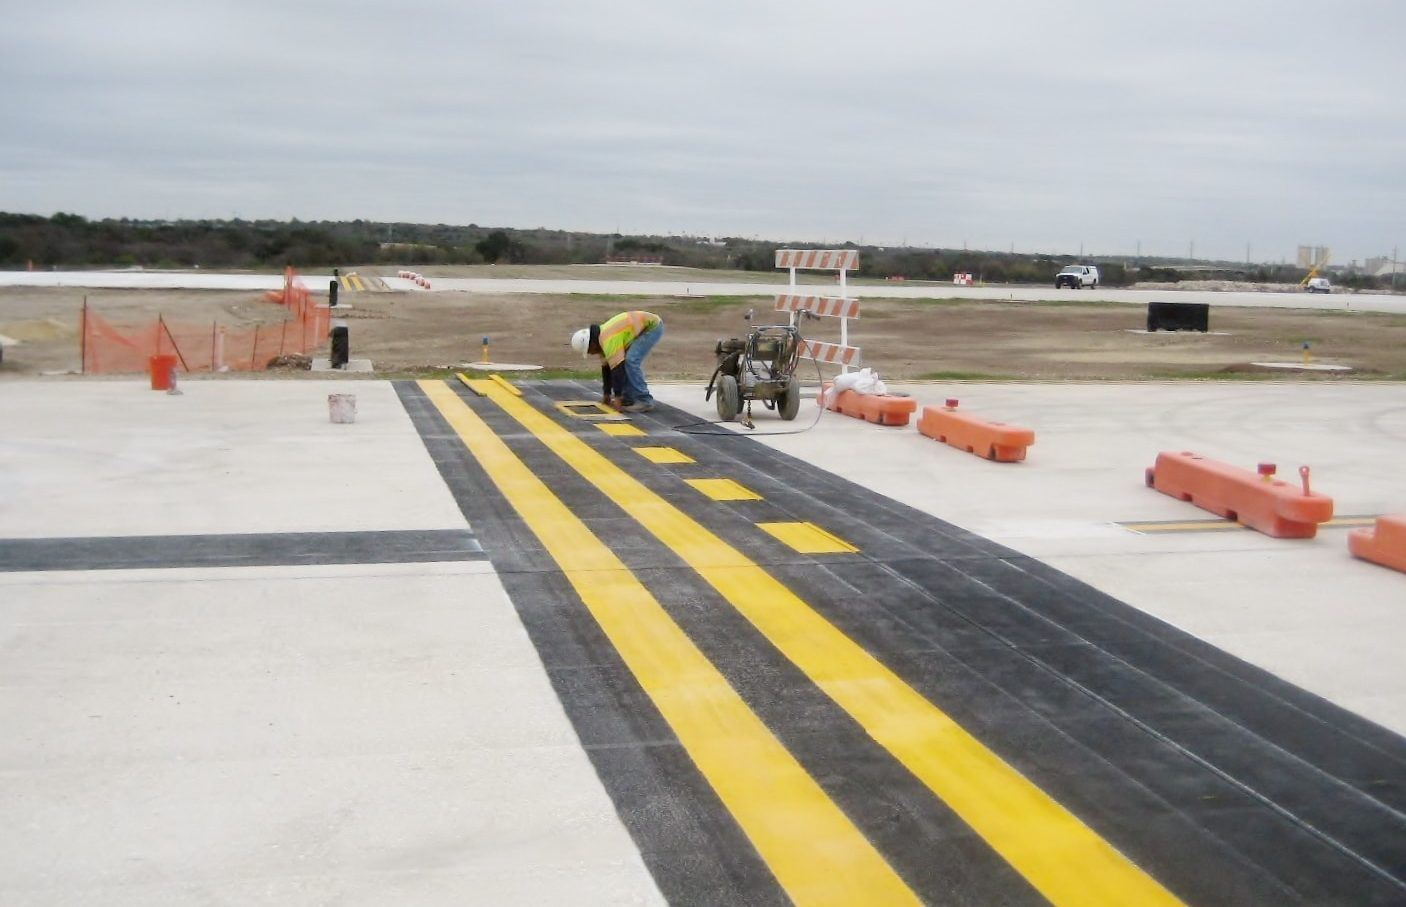 Runway at Airport